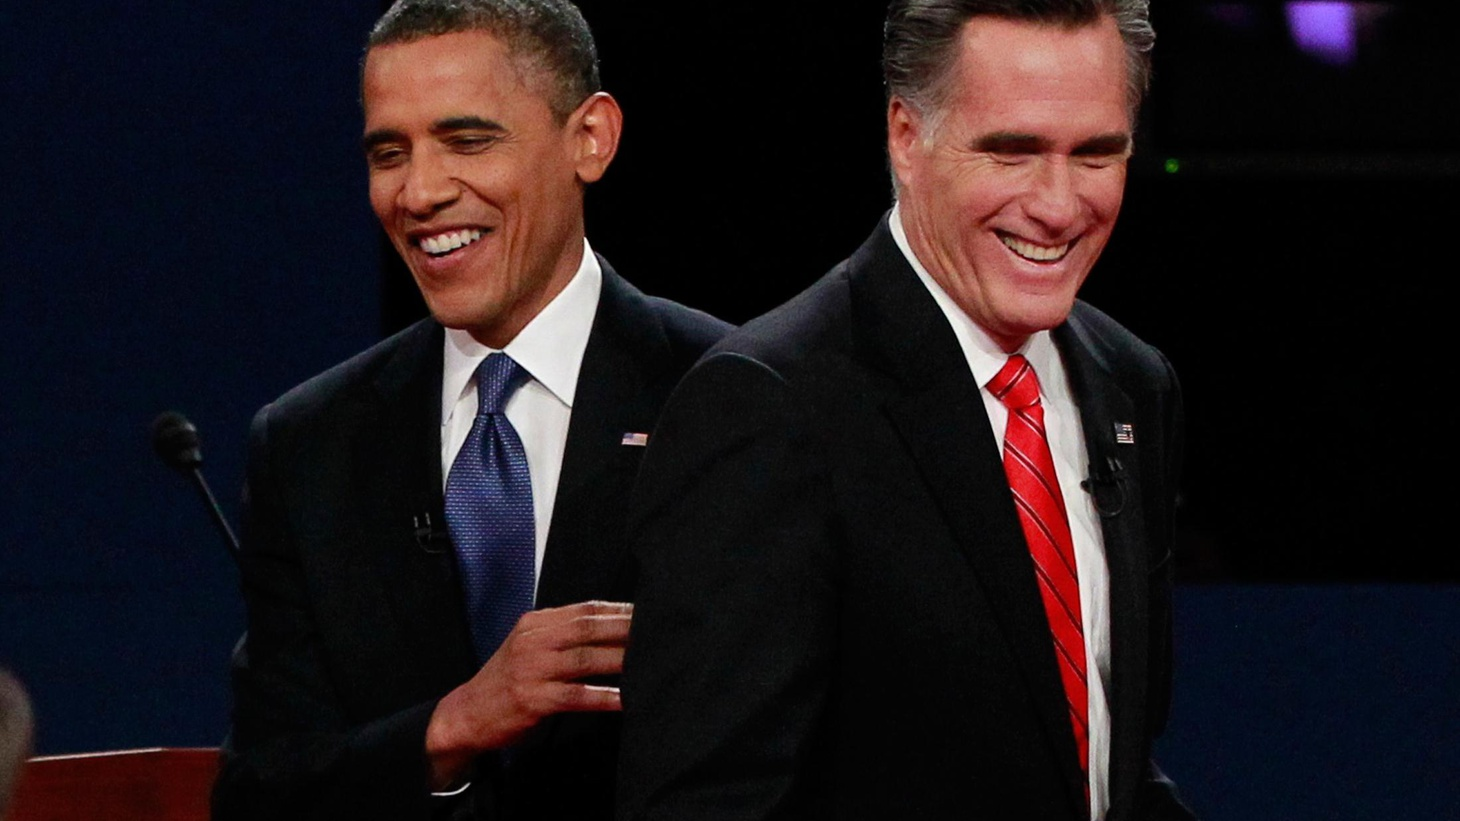 The early consensus is that an aggressive Mitt Romney won last night's debate against President Obama, who was defensive and lacking in energy. We hear early reaction.